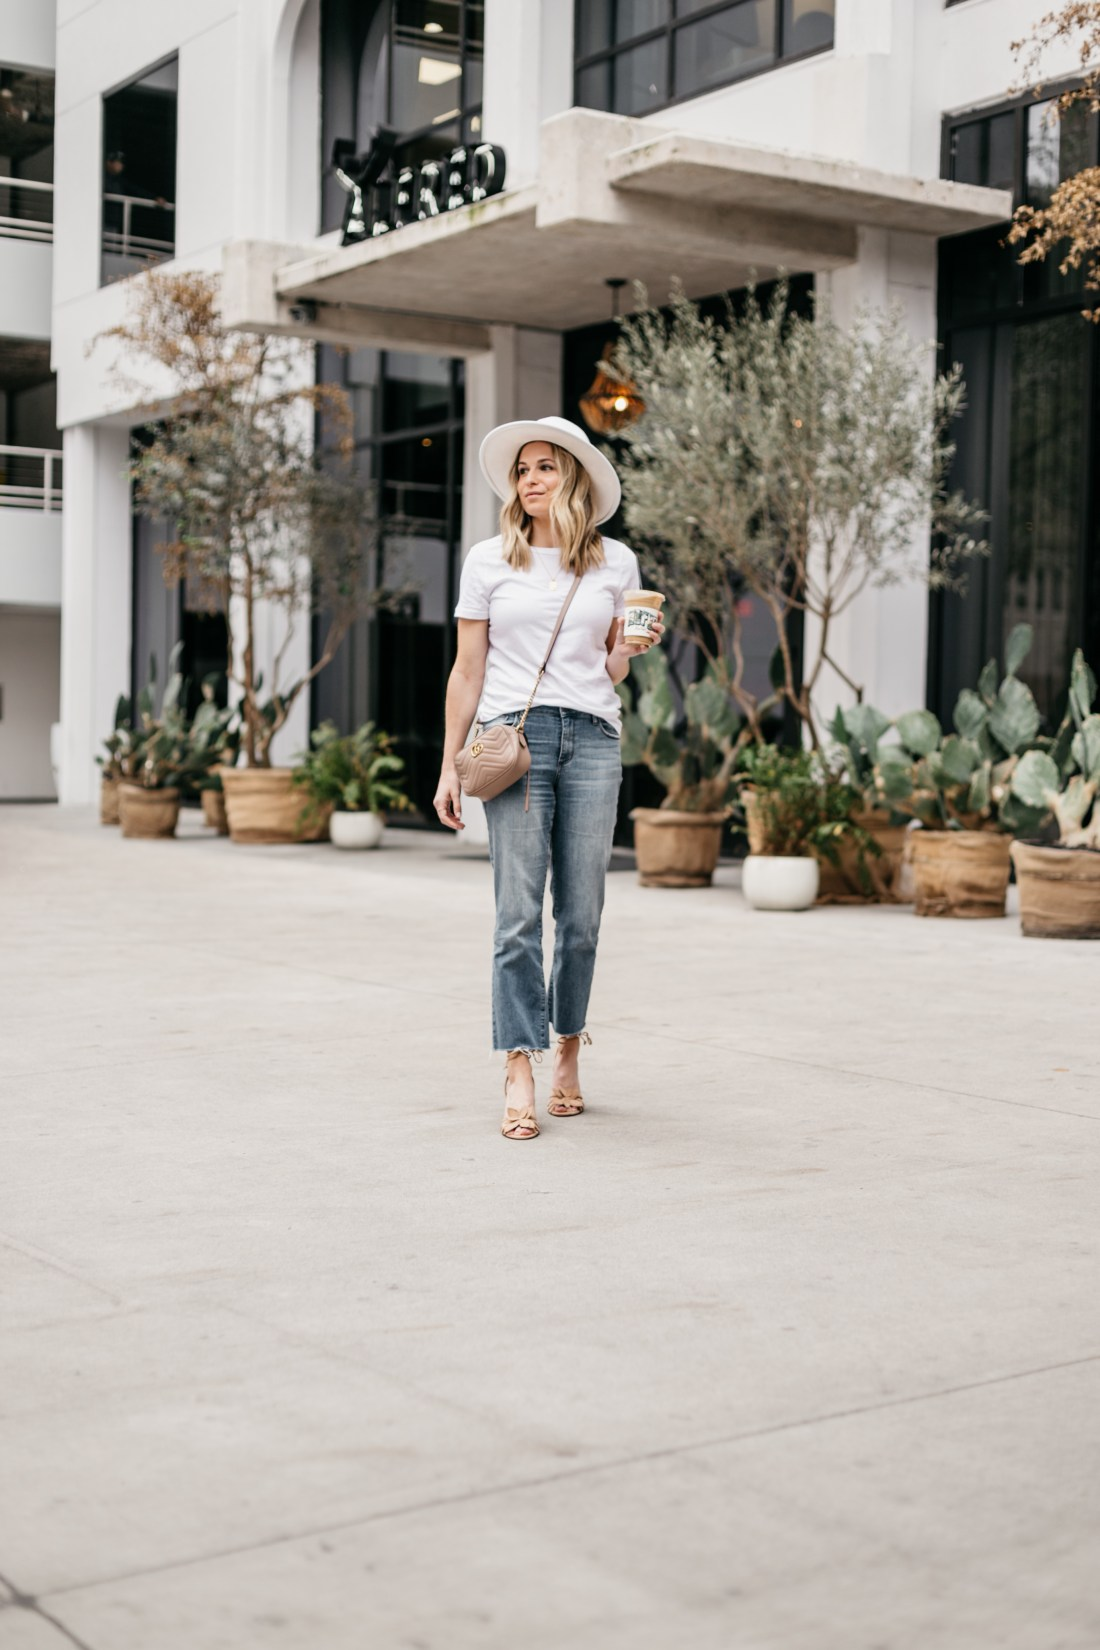 white hat and top, jeans and gucci bag outfit in Austin